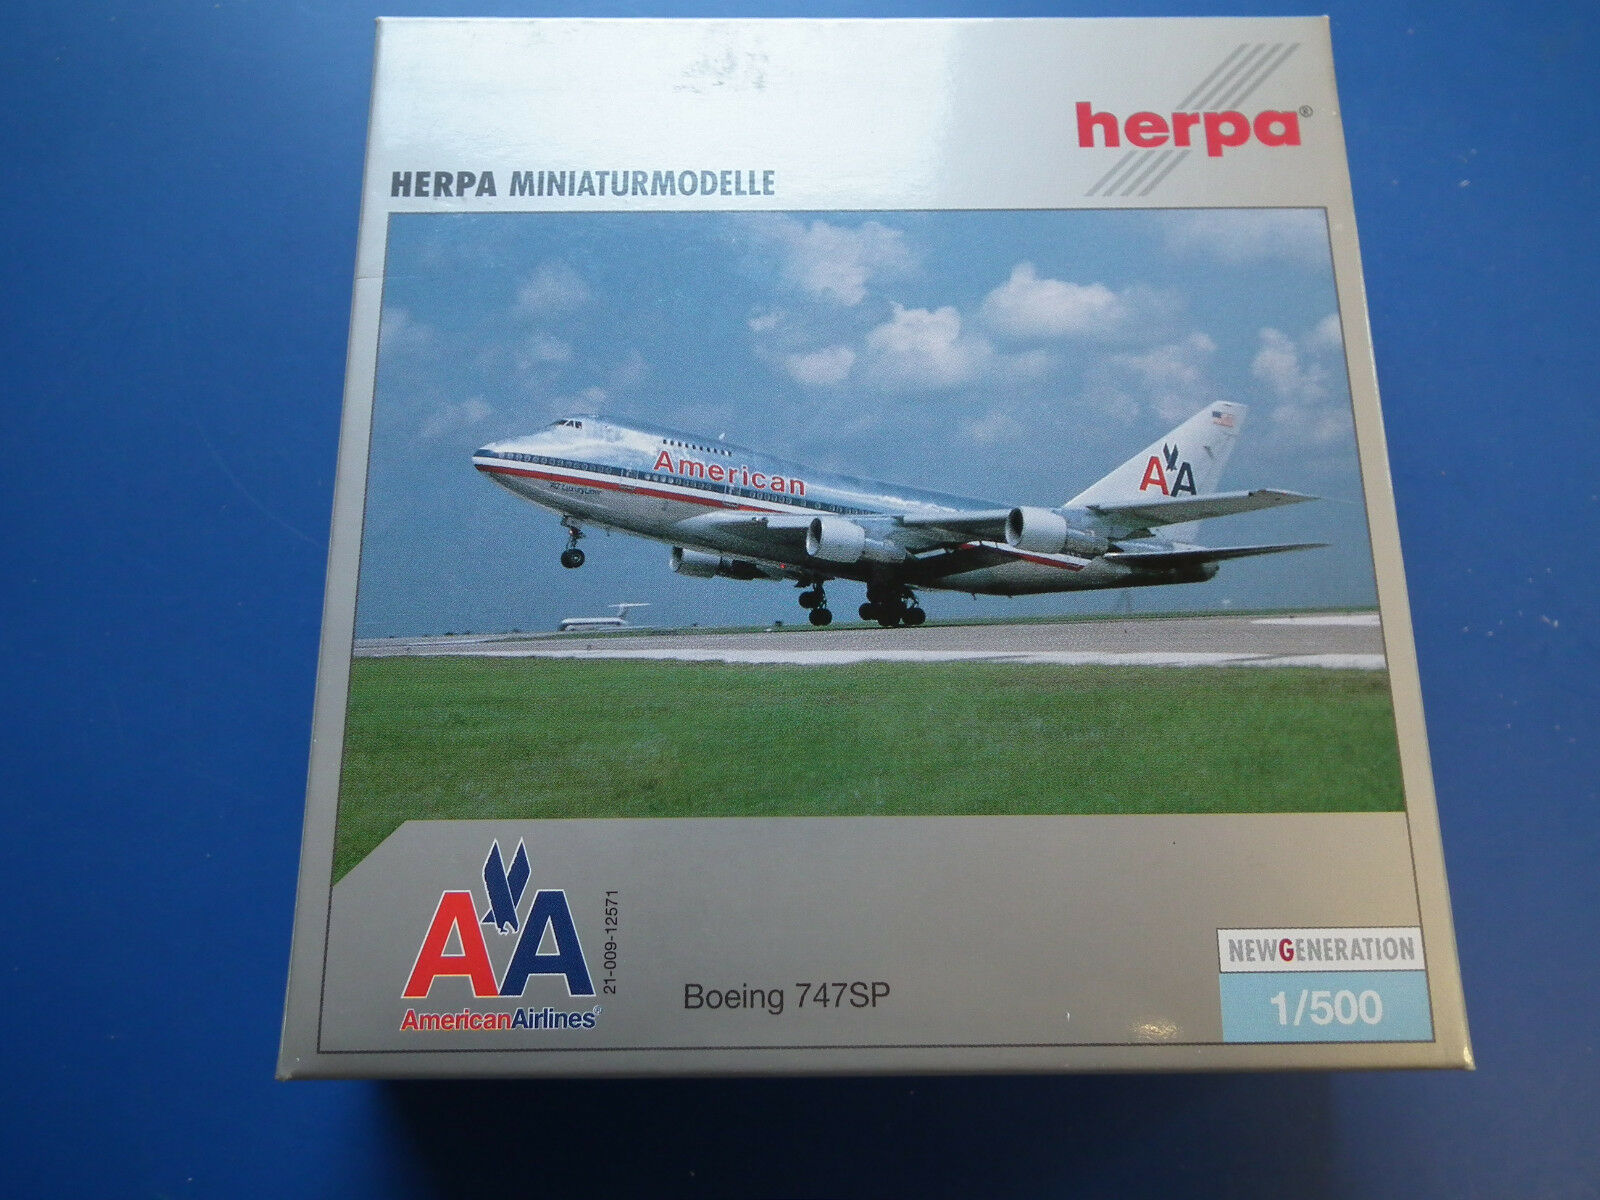 HERPA 1 500 - - - 504003 AMERICAN AIRLINES BOEING 747SP -LIMITED EDITION-OVP-TOP 23c3b3